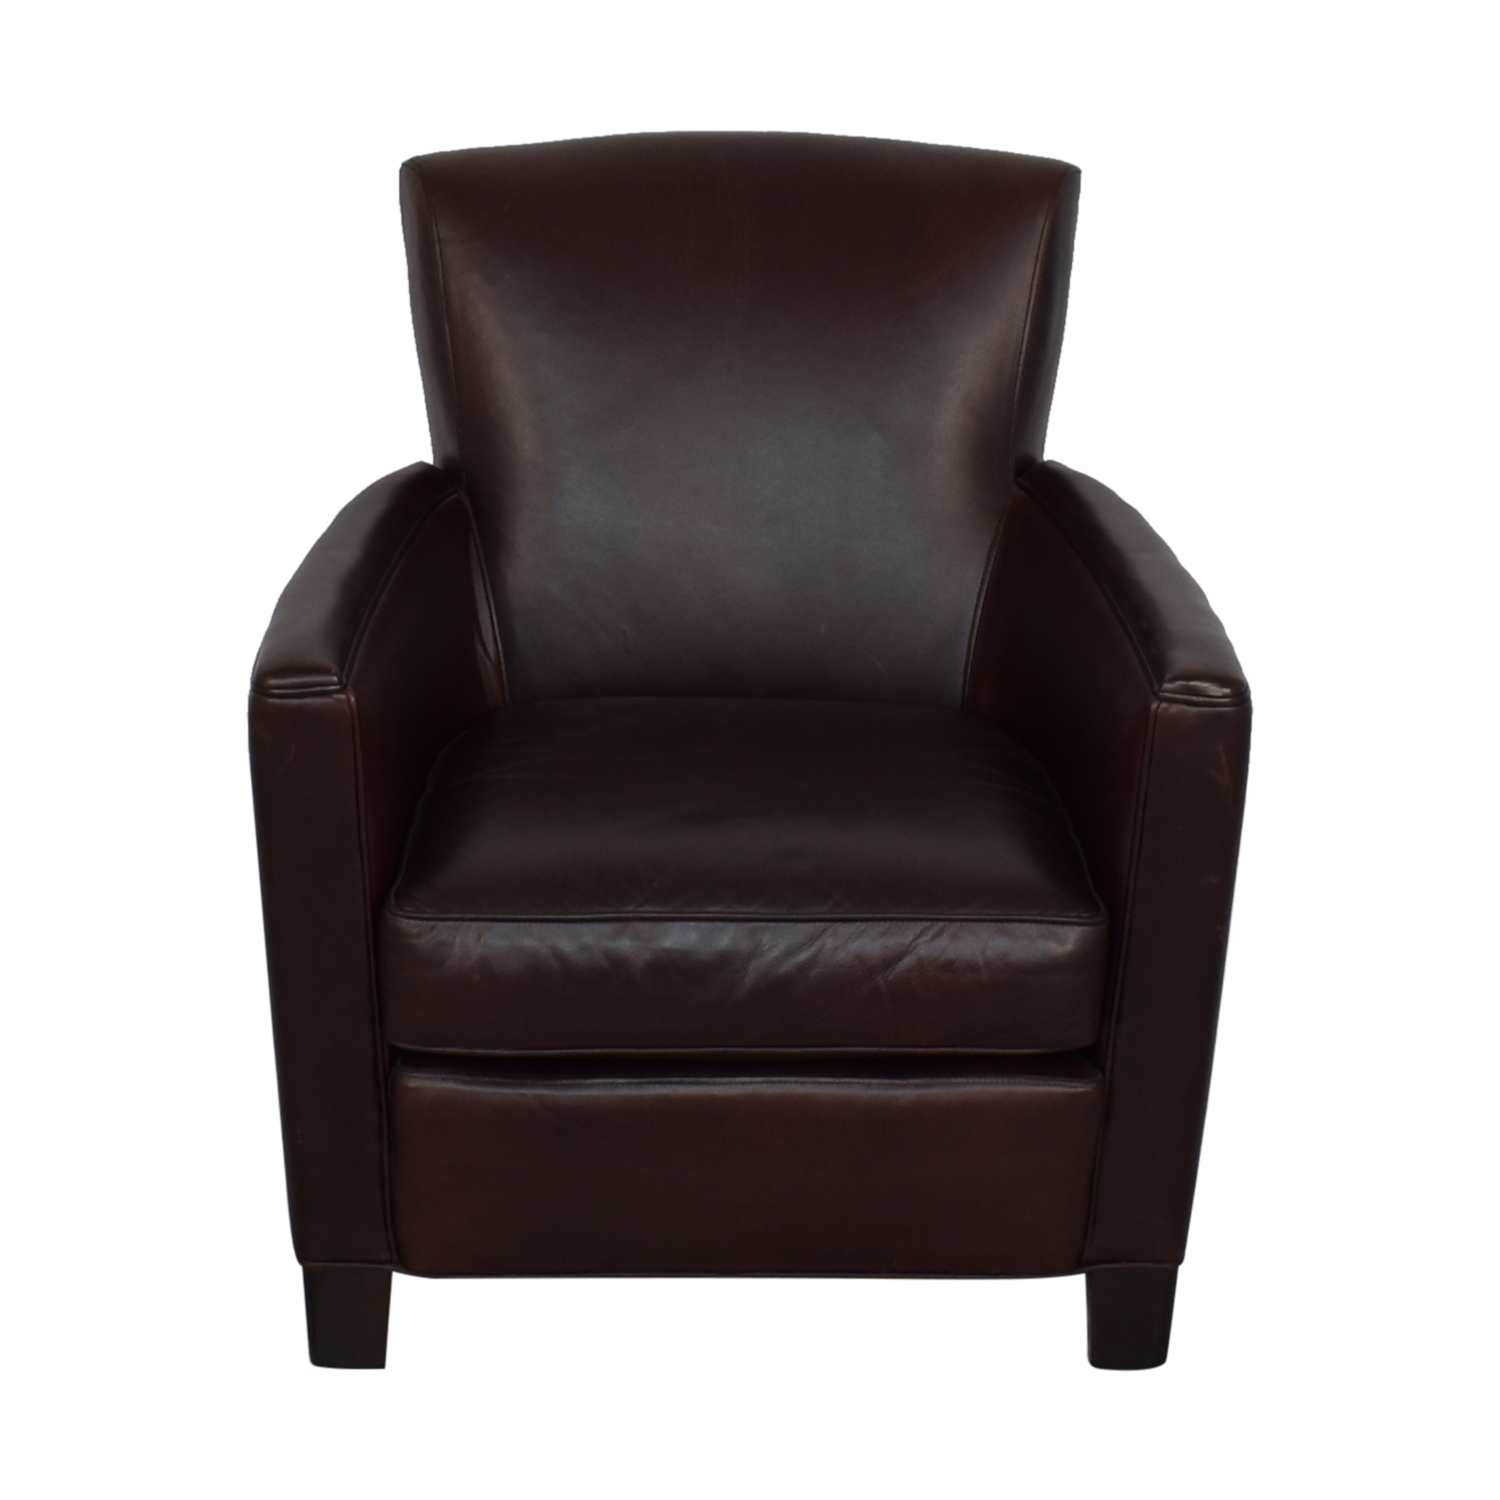 Crate & Barrel Crate & Barrel Briarwood Leather Chair dimensions